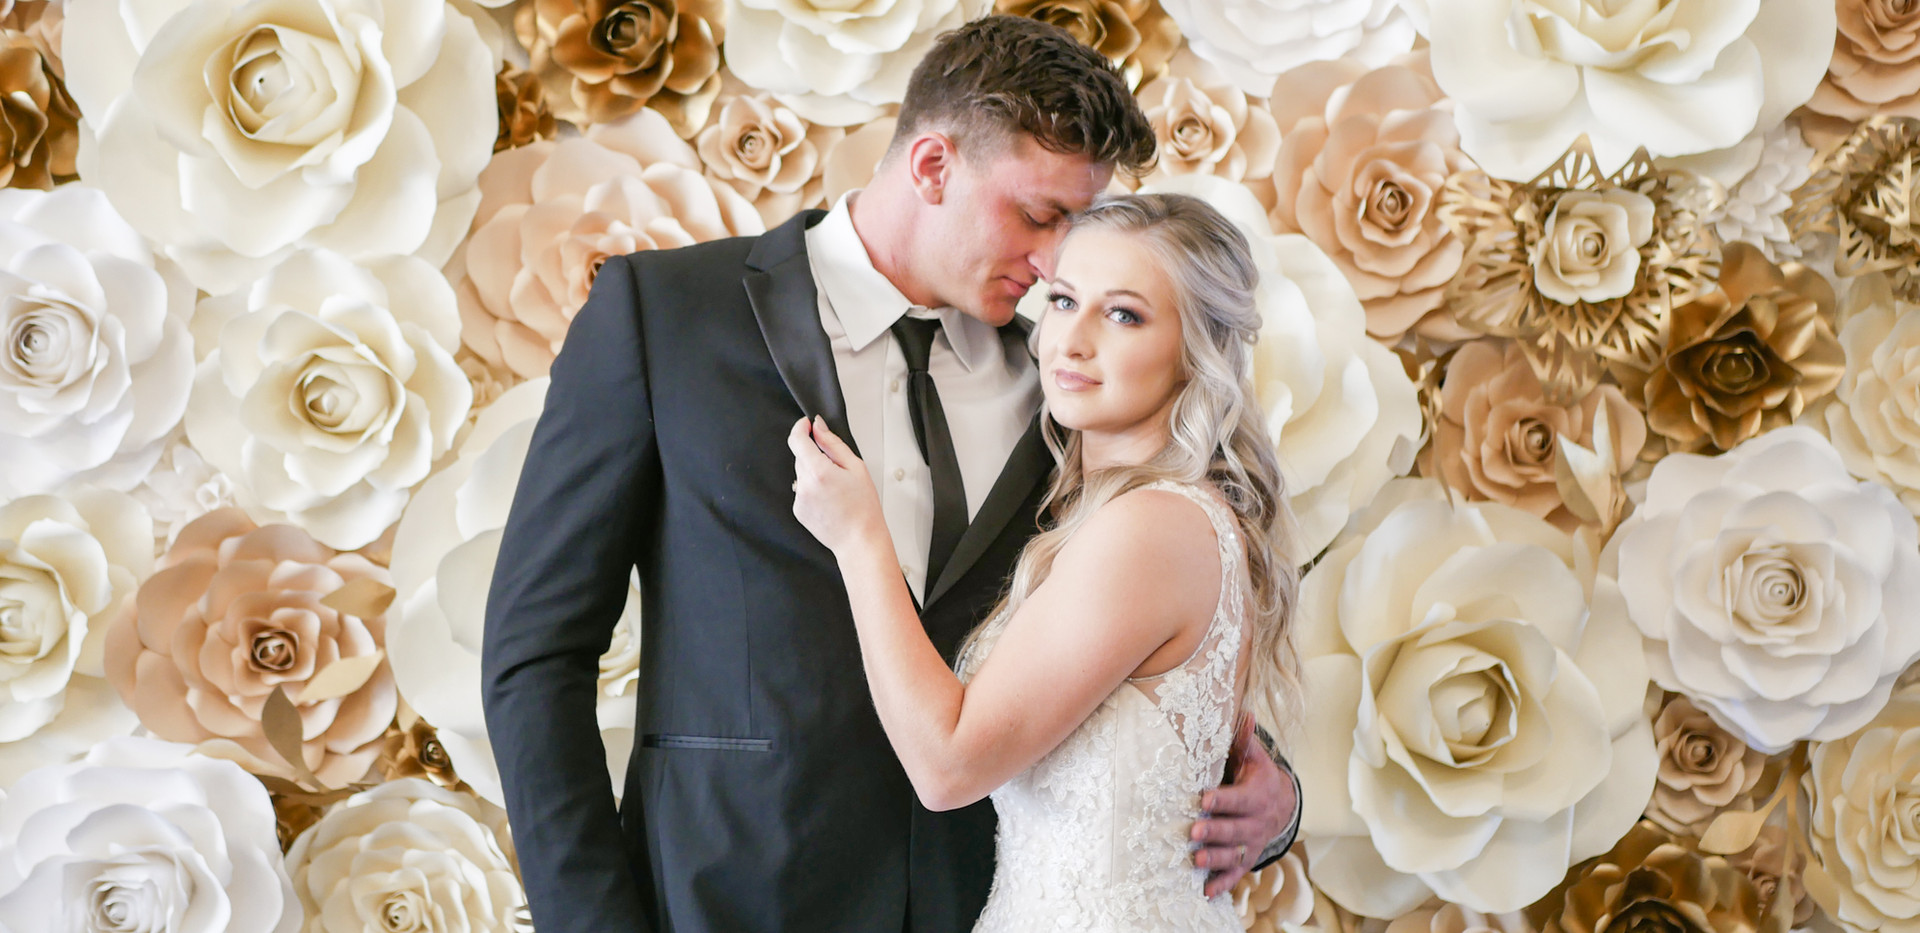 Styled shoot portrait6.jpg